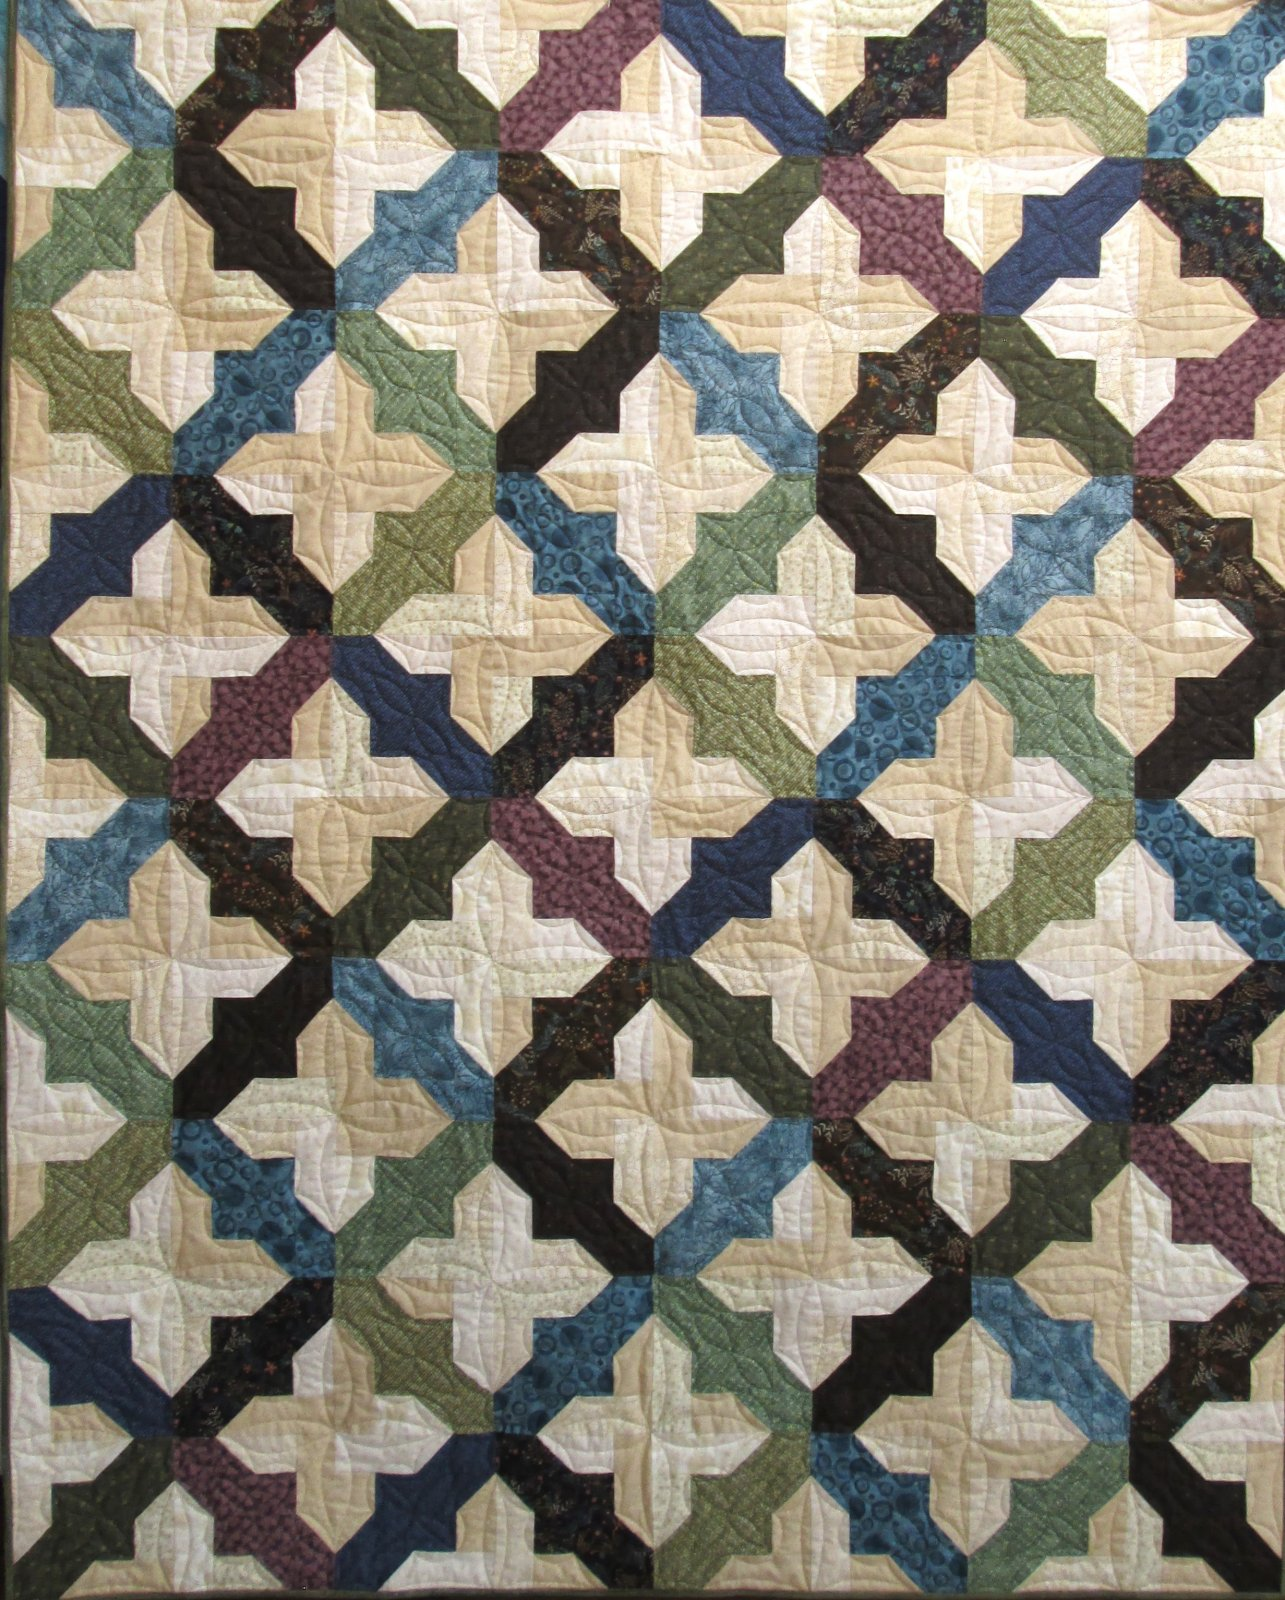 Rustic Tiling Best of Days Quilt Kit